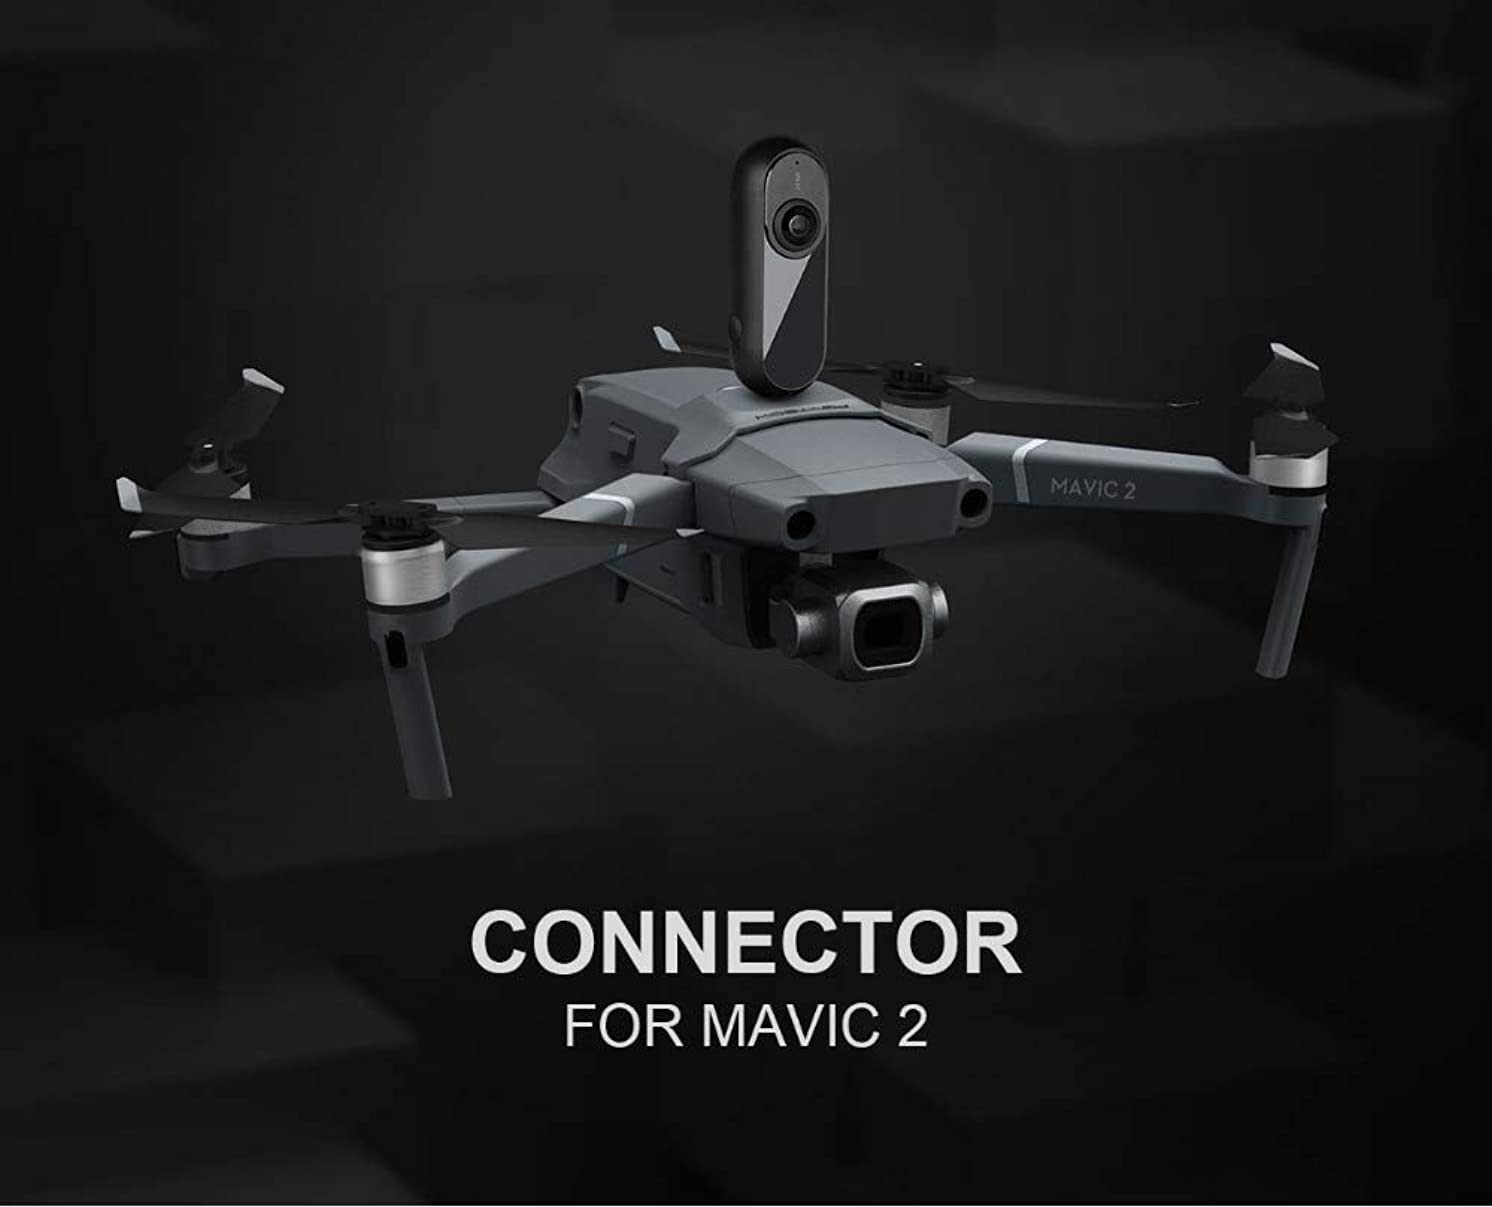 BeesClover for DJI Mavic 2 Pro/Zoom Connection Mount Adapter Connector for Sports Action Camera Mavic 2 Accessories